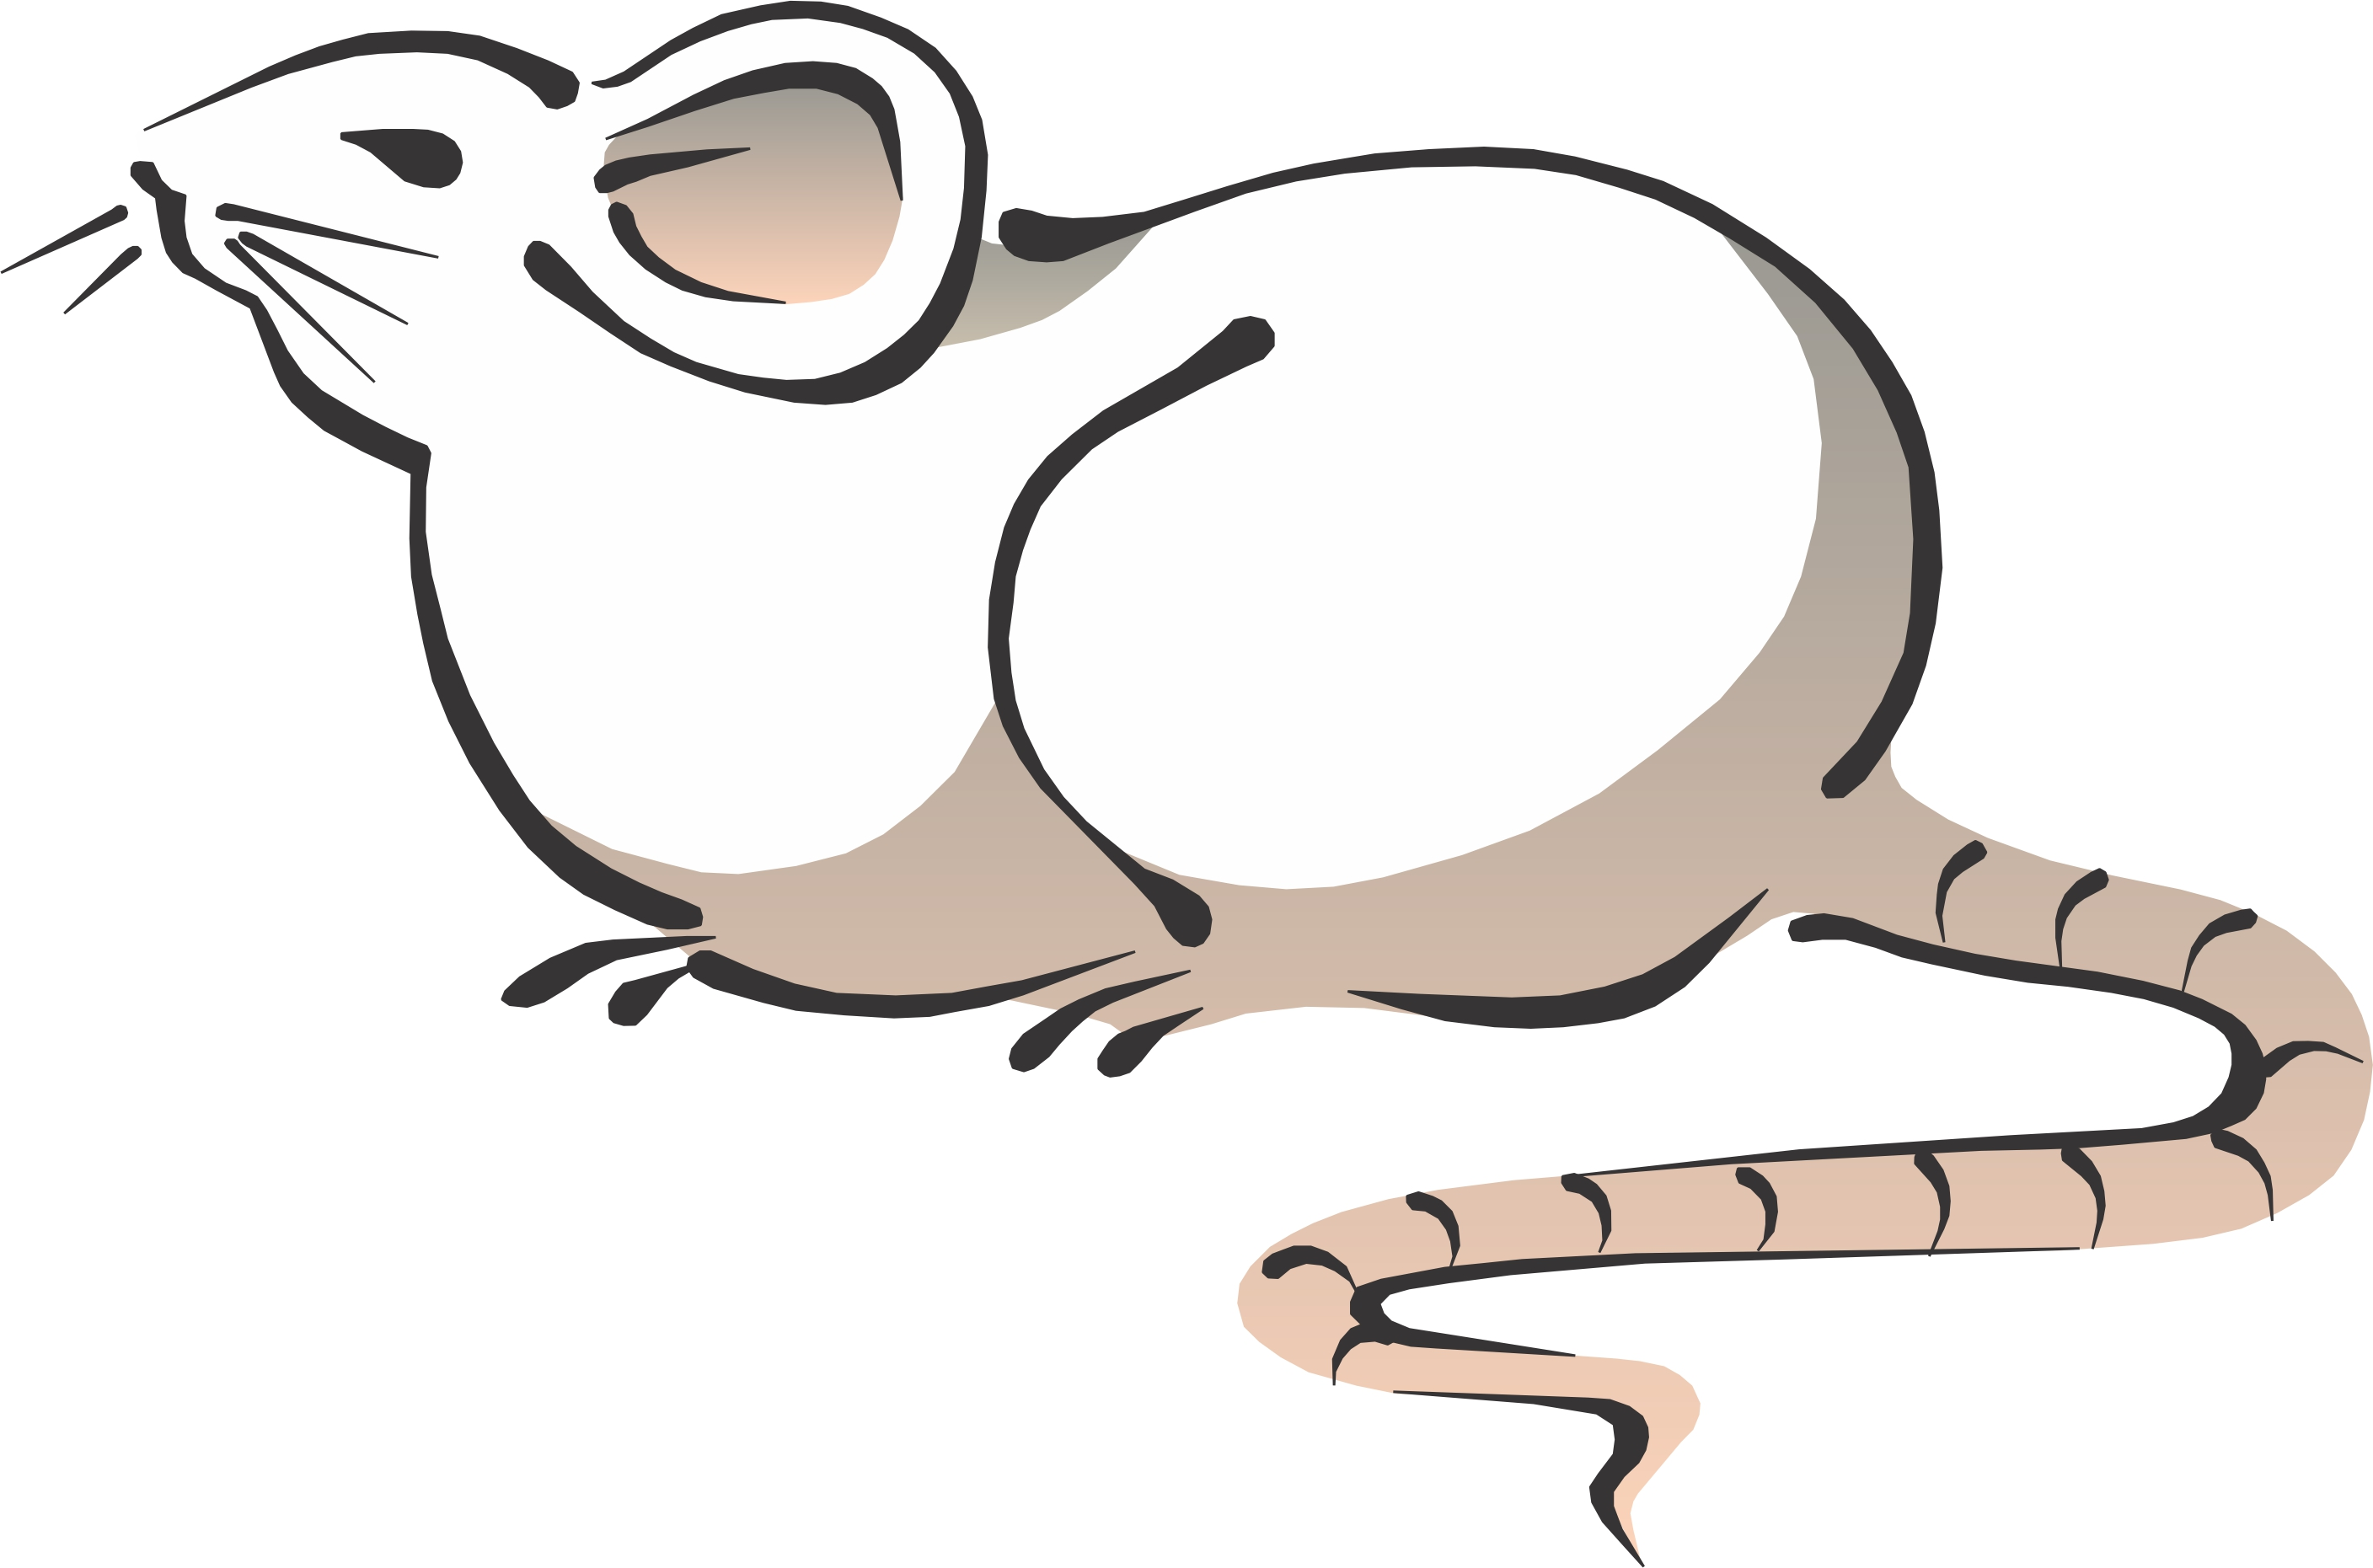 Free Mouse Cartoon, Download Free Clip Art, Free Clip Art on.